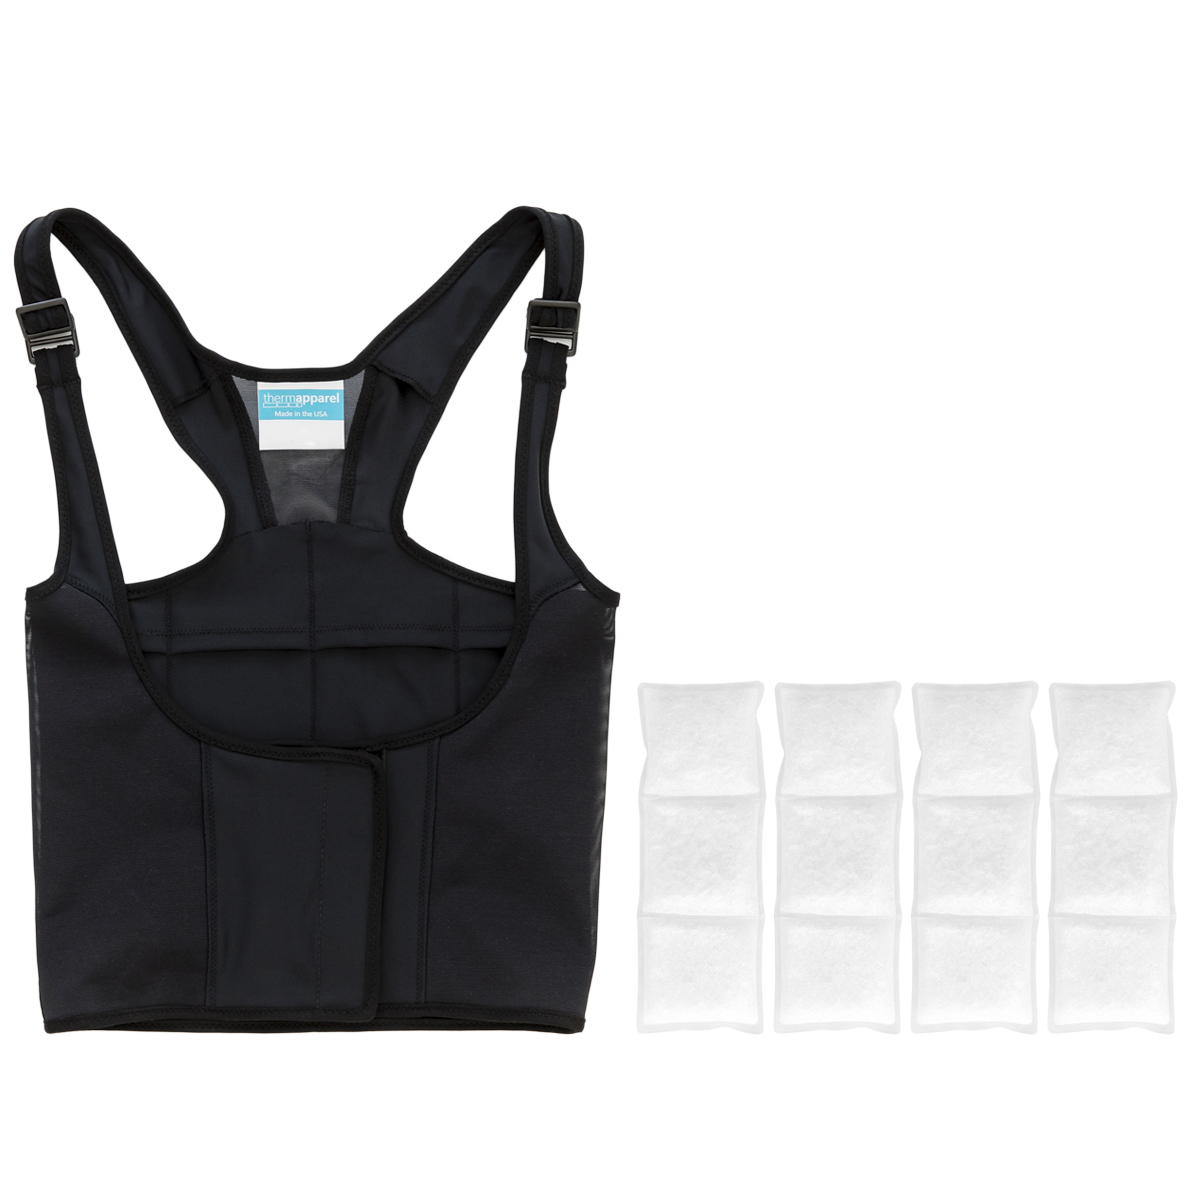 How Can I Get A Prescription For A Cooling Vest?